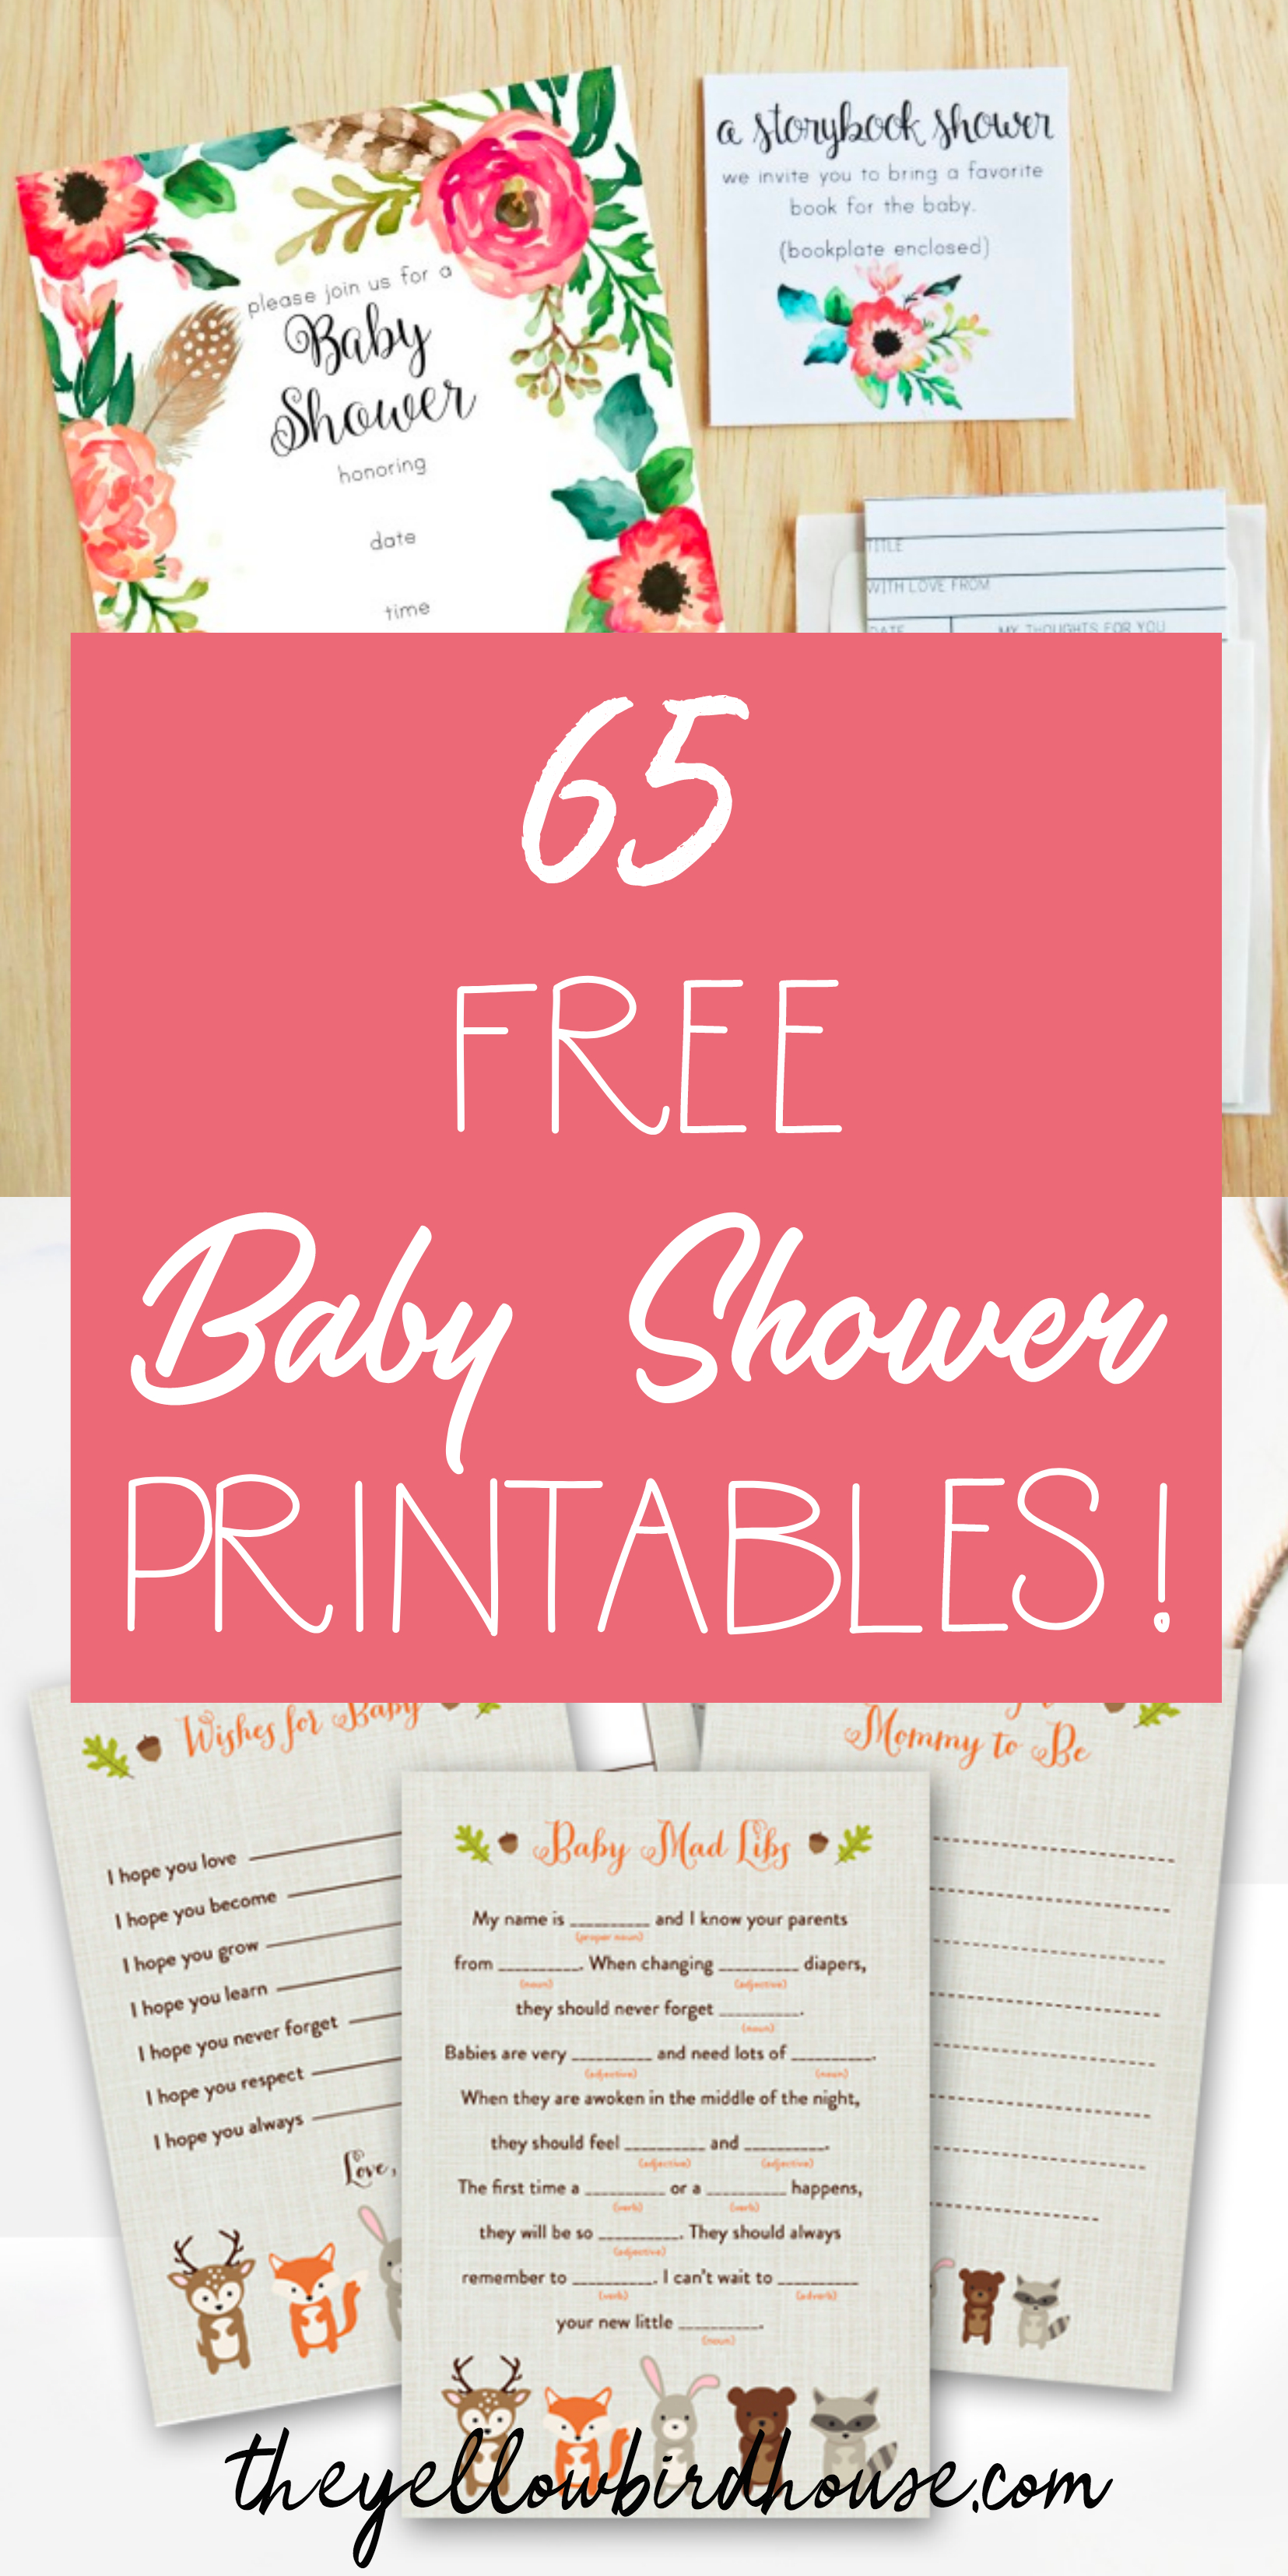 65 Free Baby Shower Printables For An Adorable Party - Free Printable Boy Baby Shower Photo Booth Props